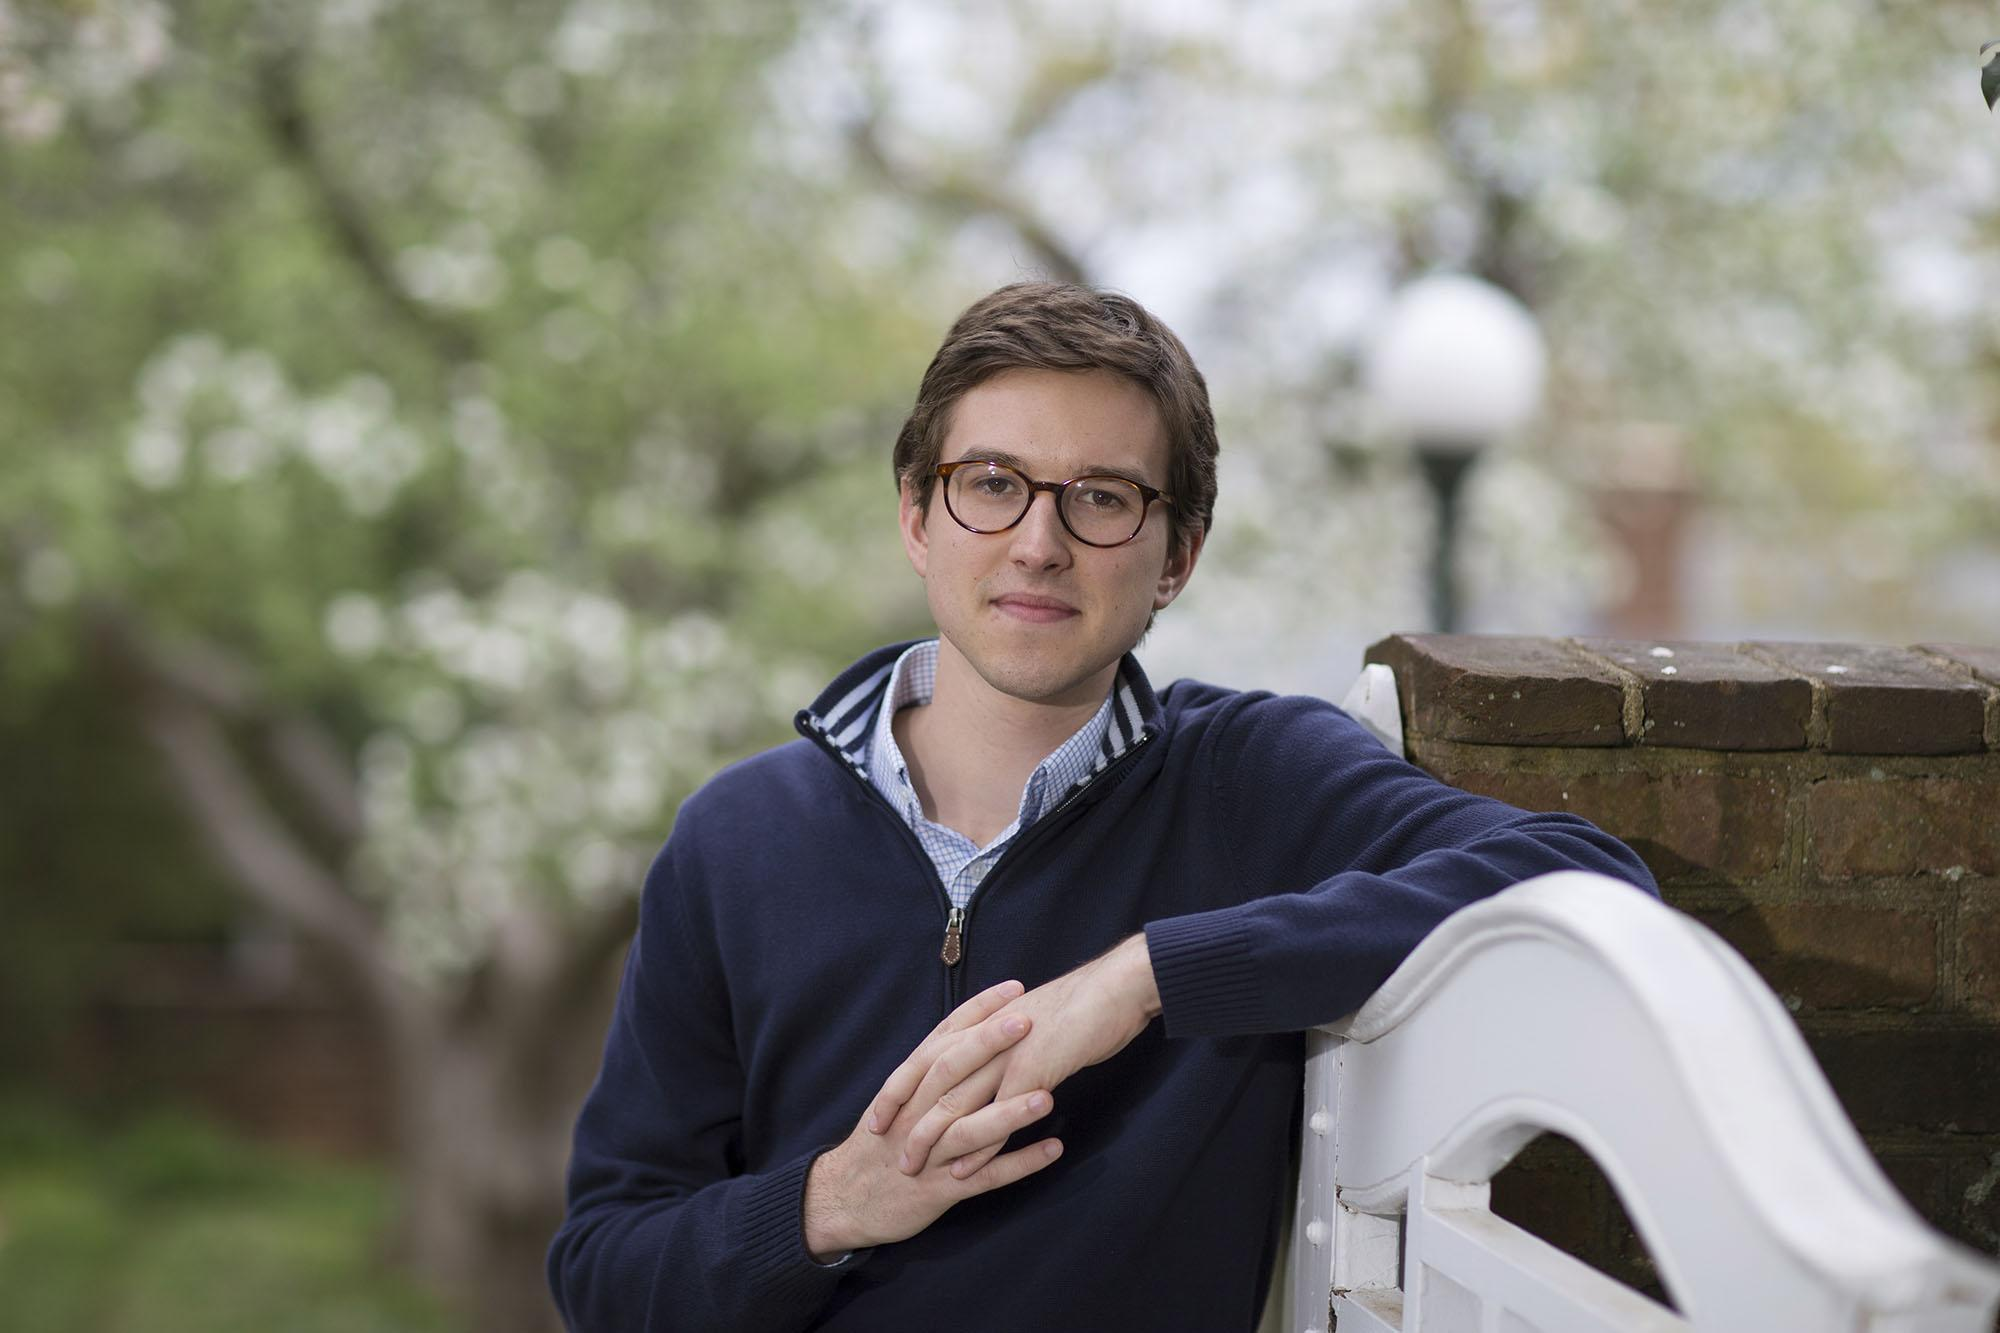 Russell Bogue is the University of Virginia's 51st Rhodes Scholar.